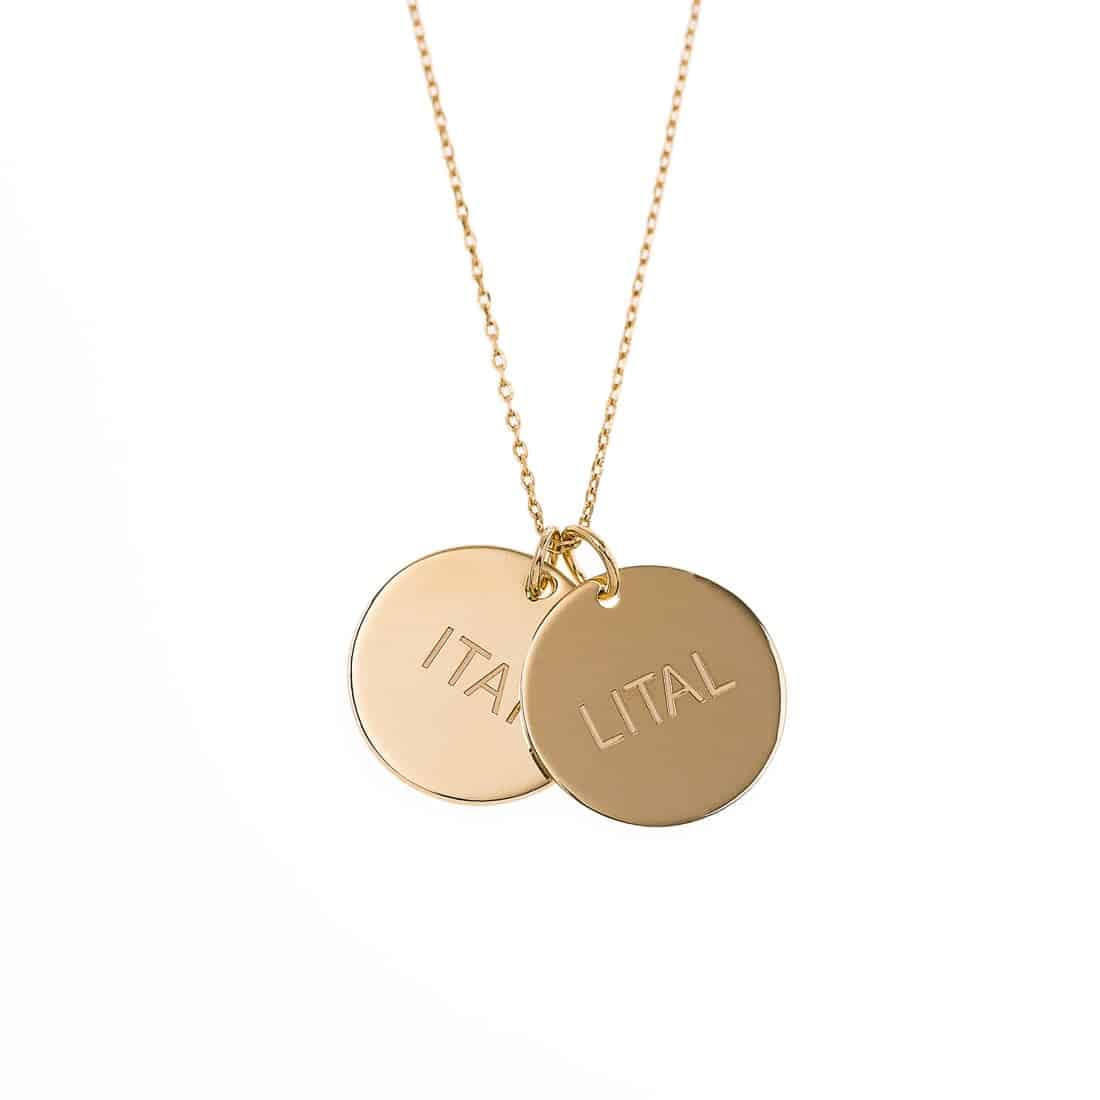 Hebrew Name Necklace - 2 Gold Disc